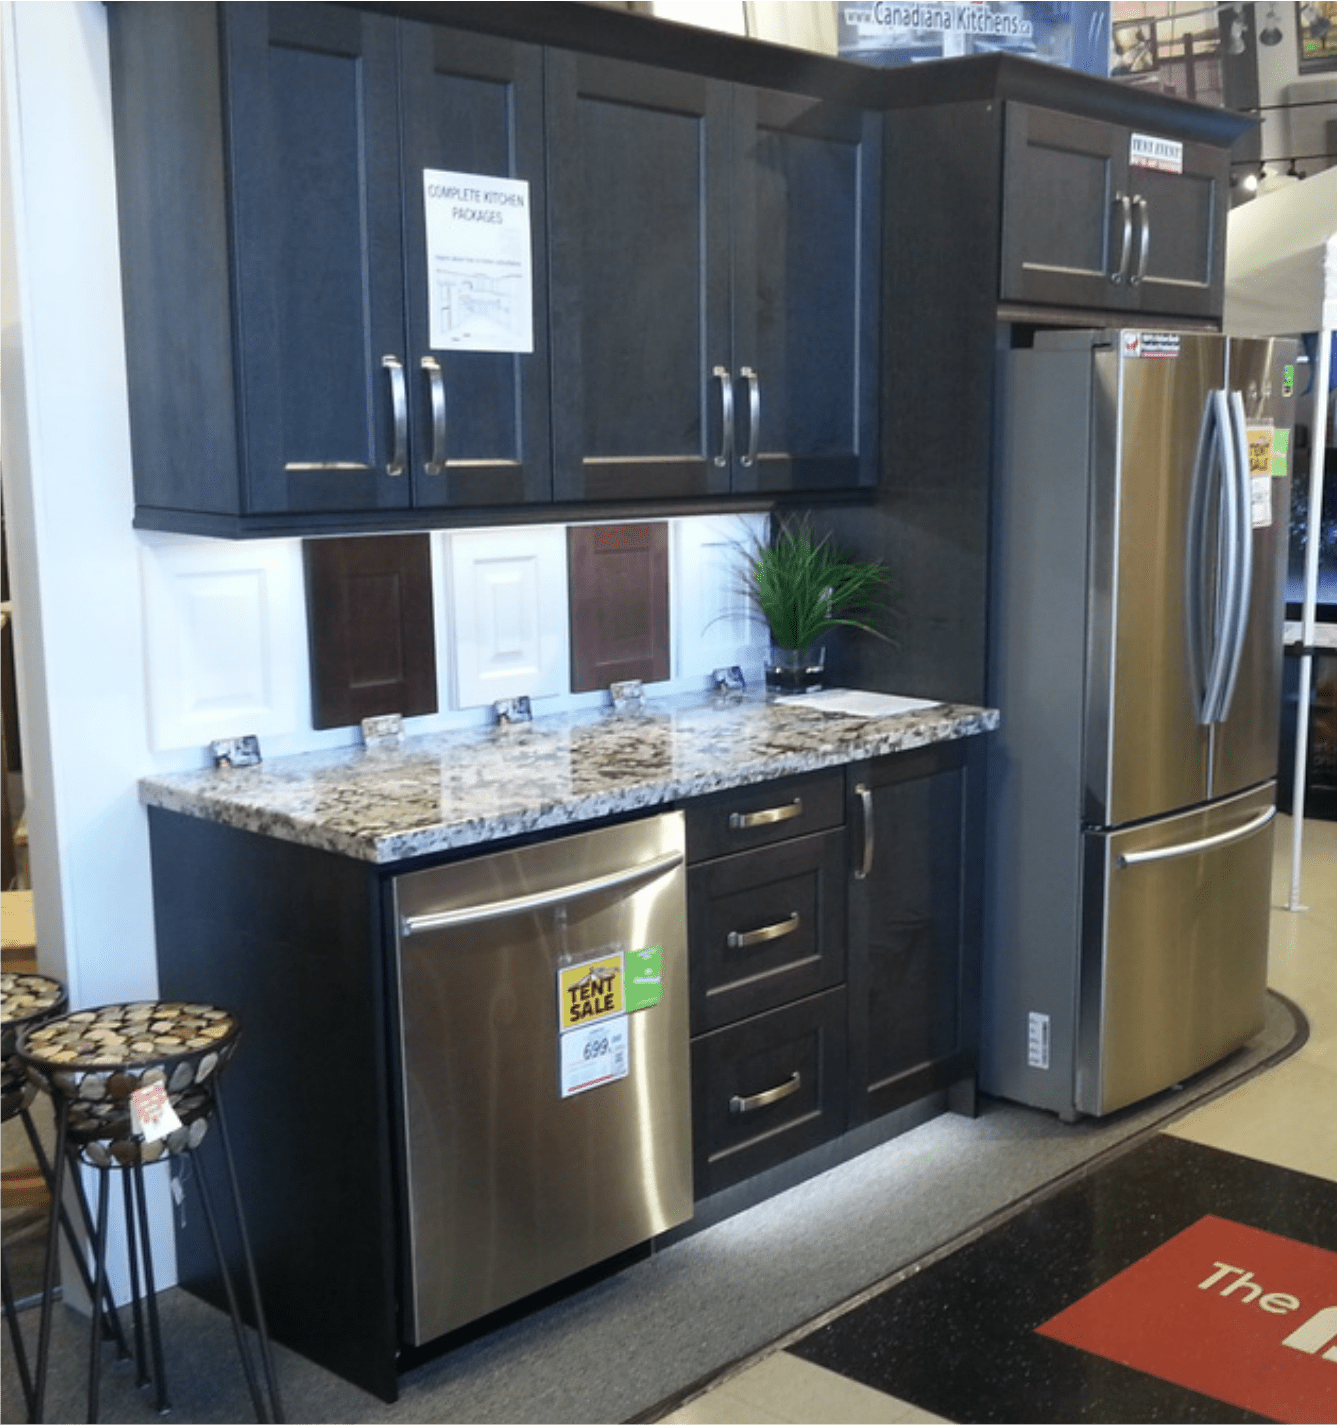 kitchen display farmhouse lighting cabinet displays barrie on boutiques by at scott s flooring in hgtv shaw store